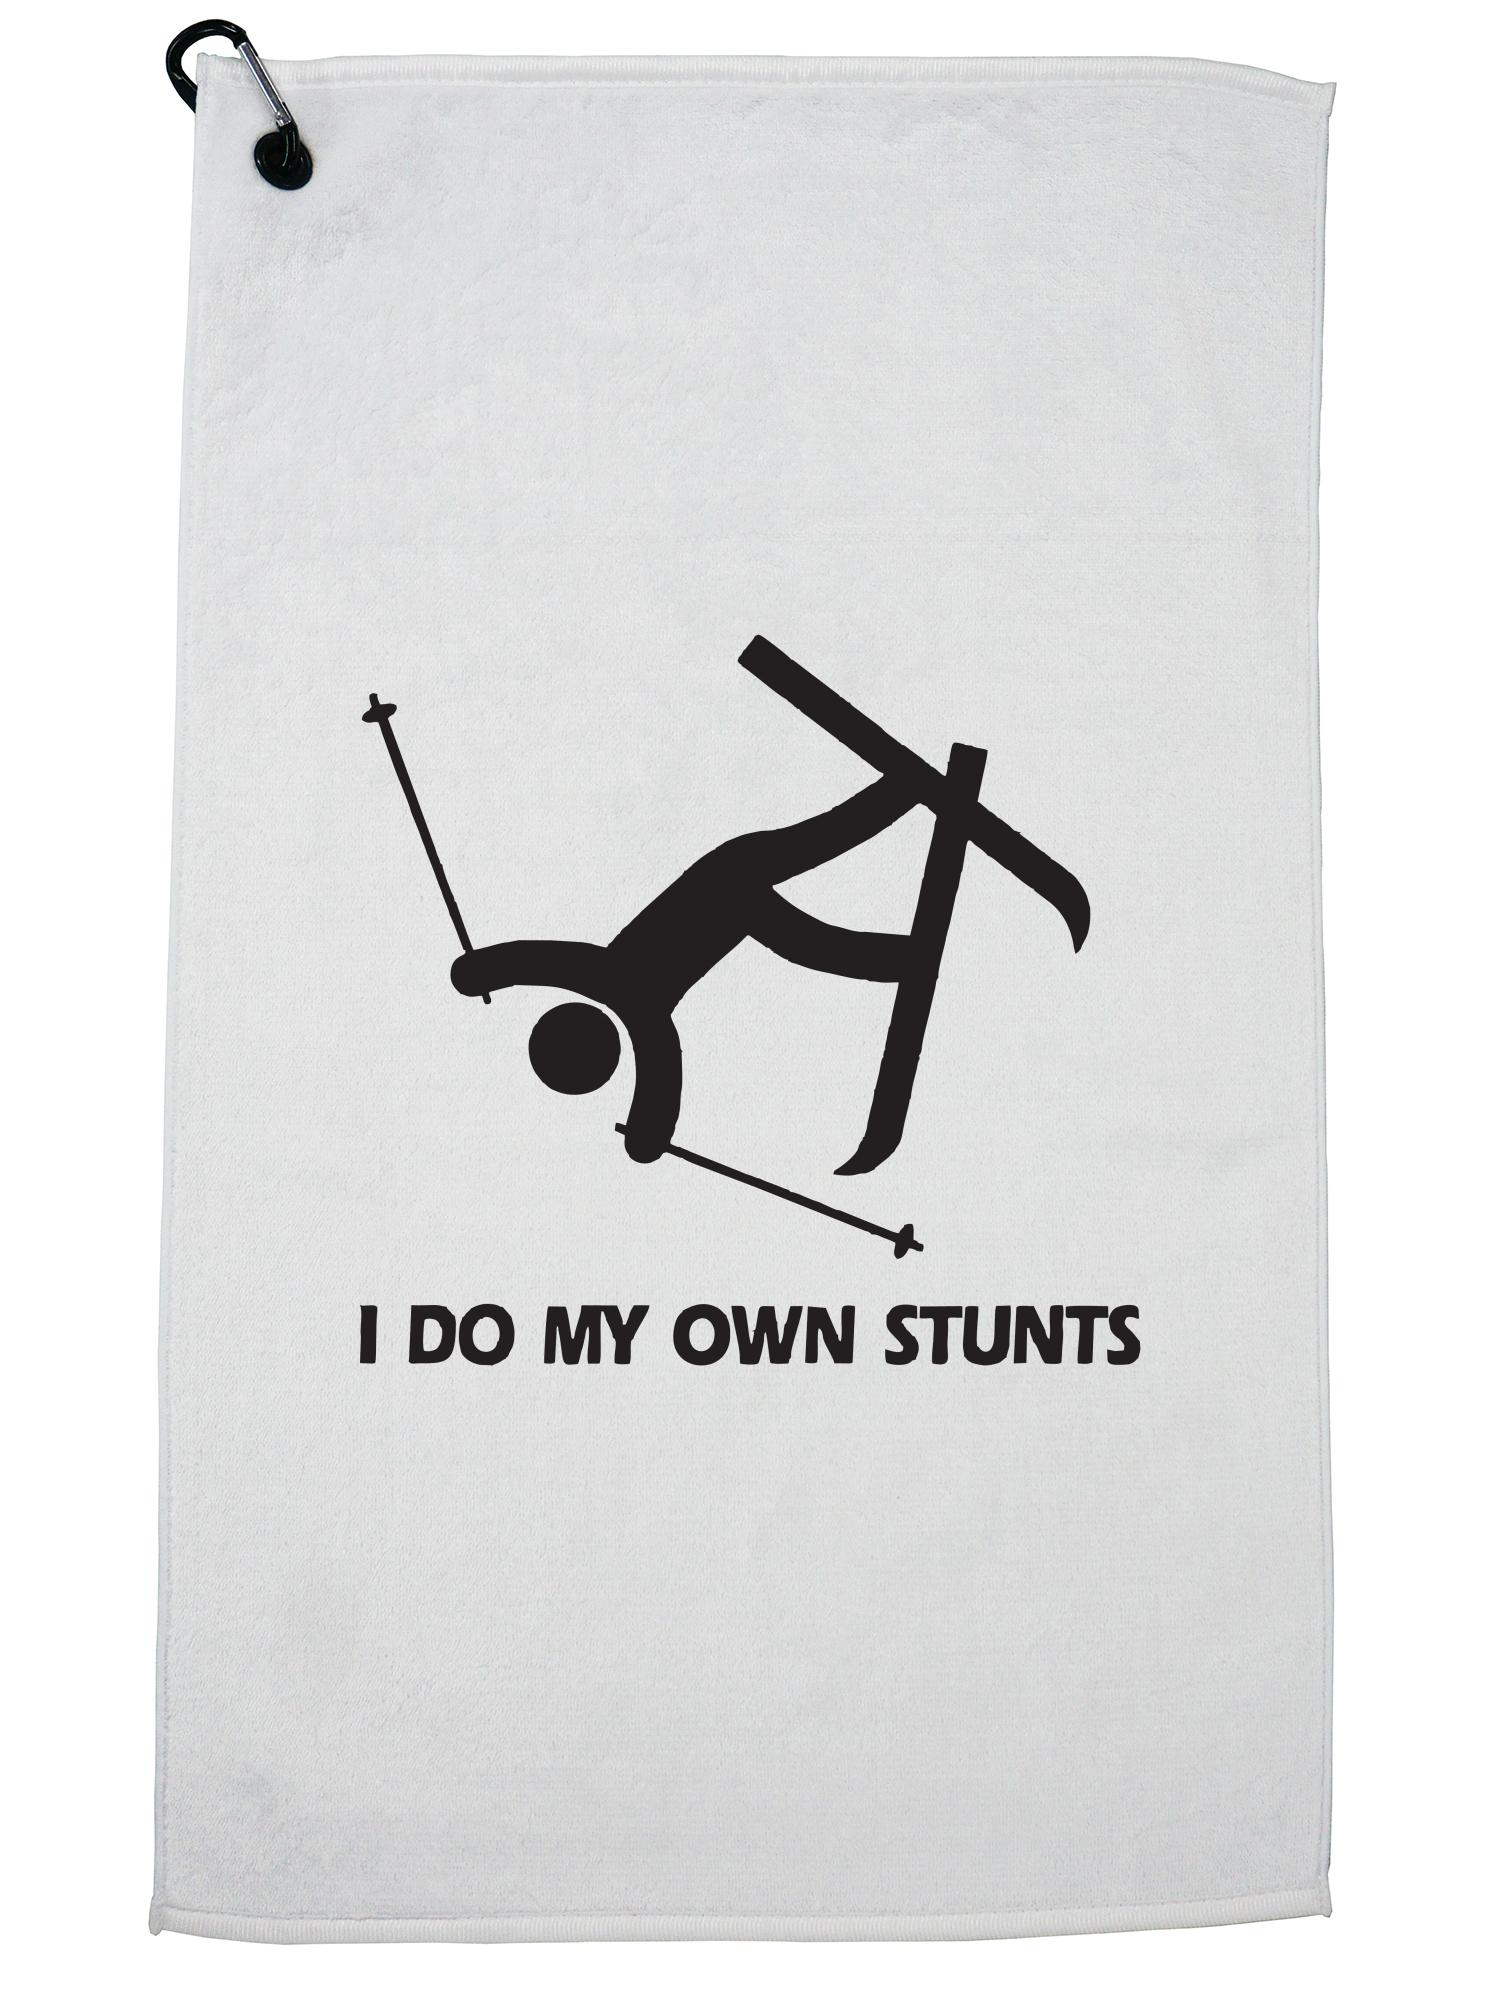 Skiing I Do My Own Stunts Hilarious Graphic Golf Towel with Carabiner Clip by Hollywood Thread